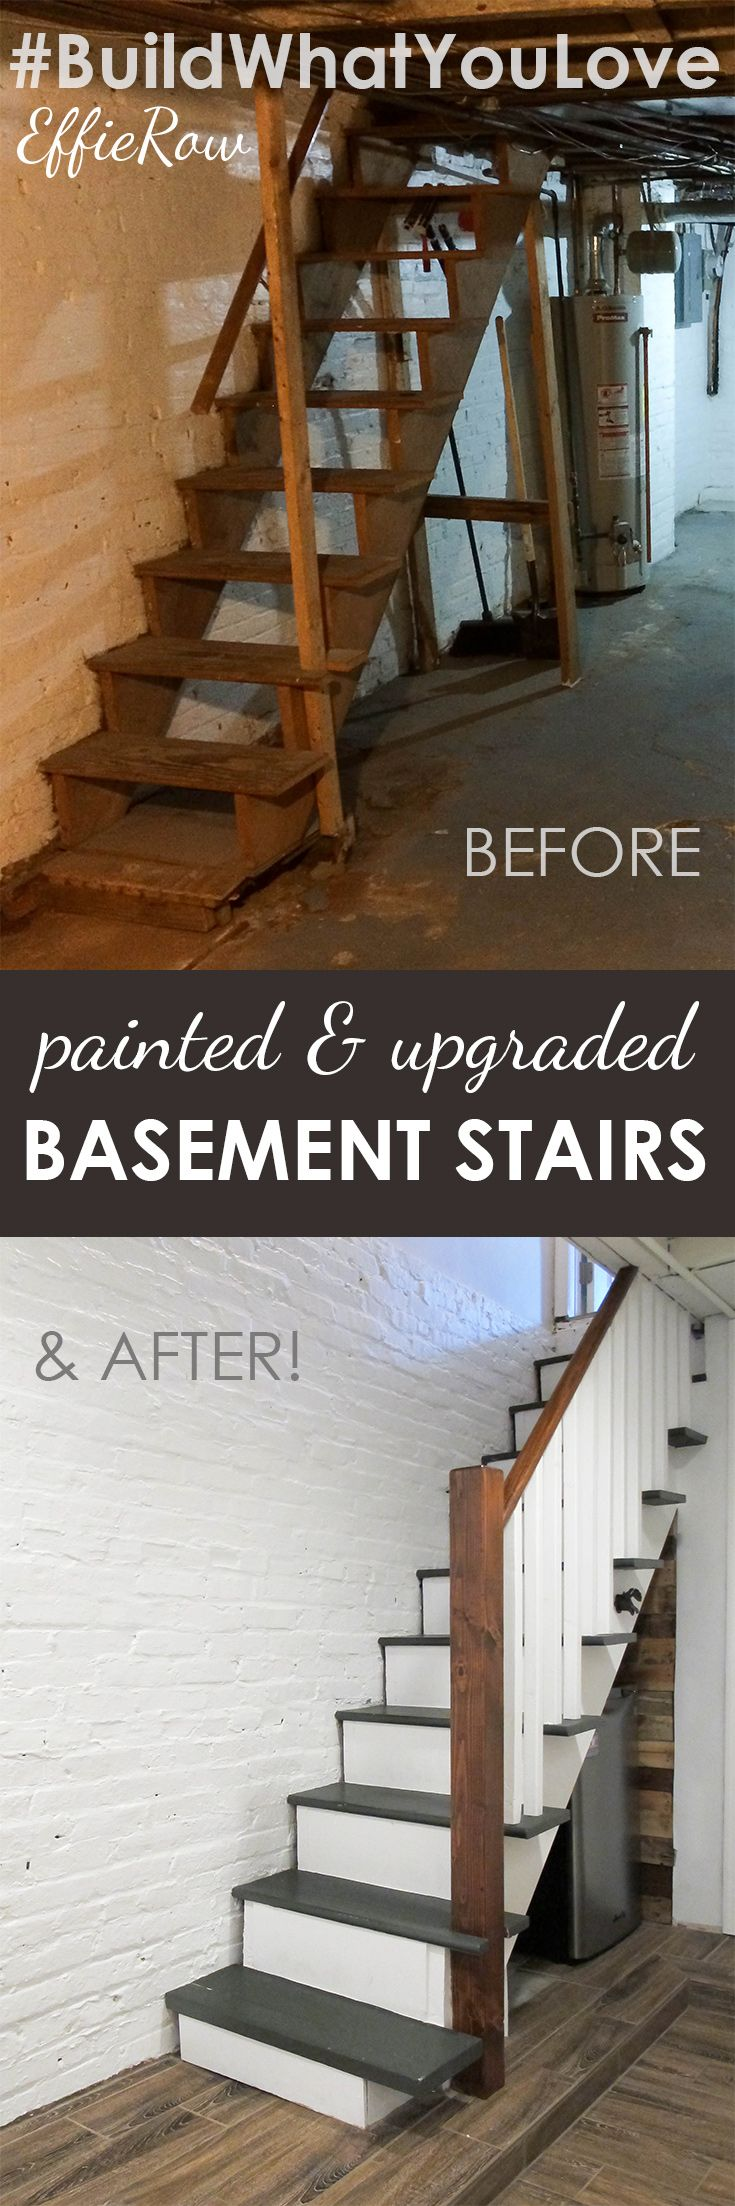 Diy Painted Amp Upgraded Basement Stairs Affordable